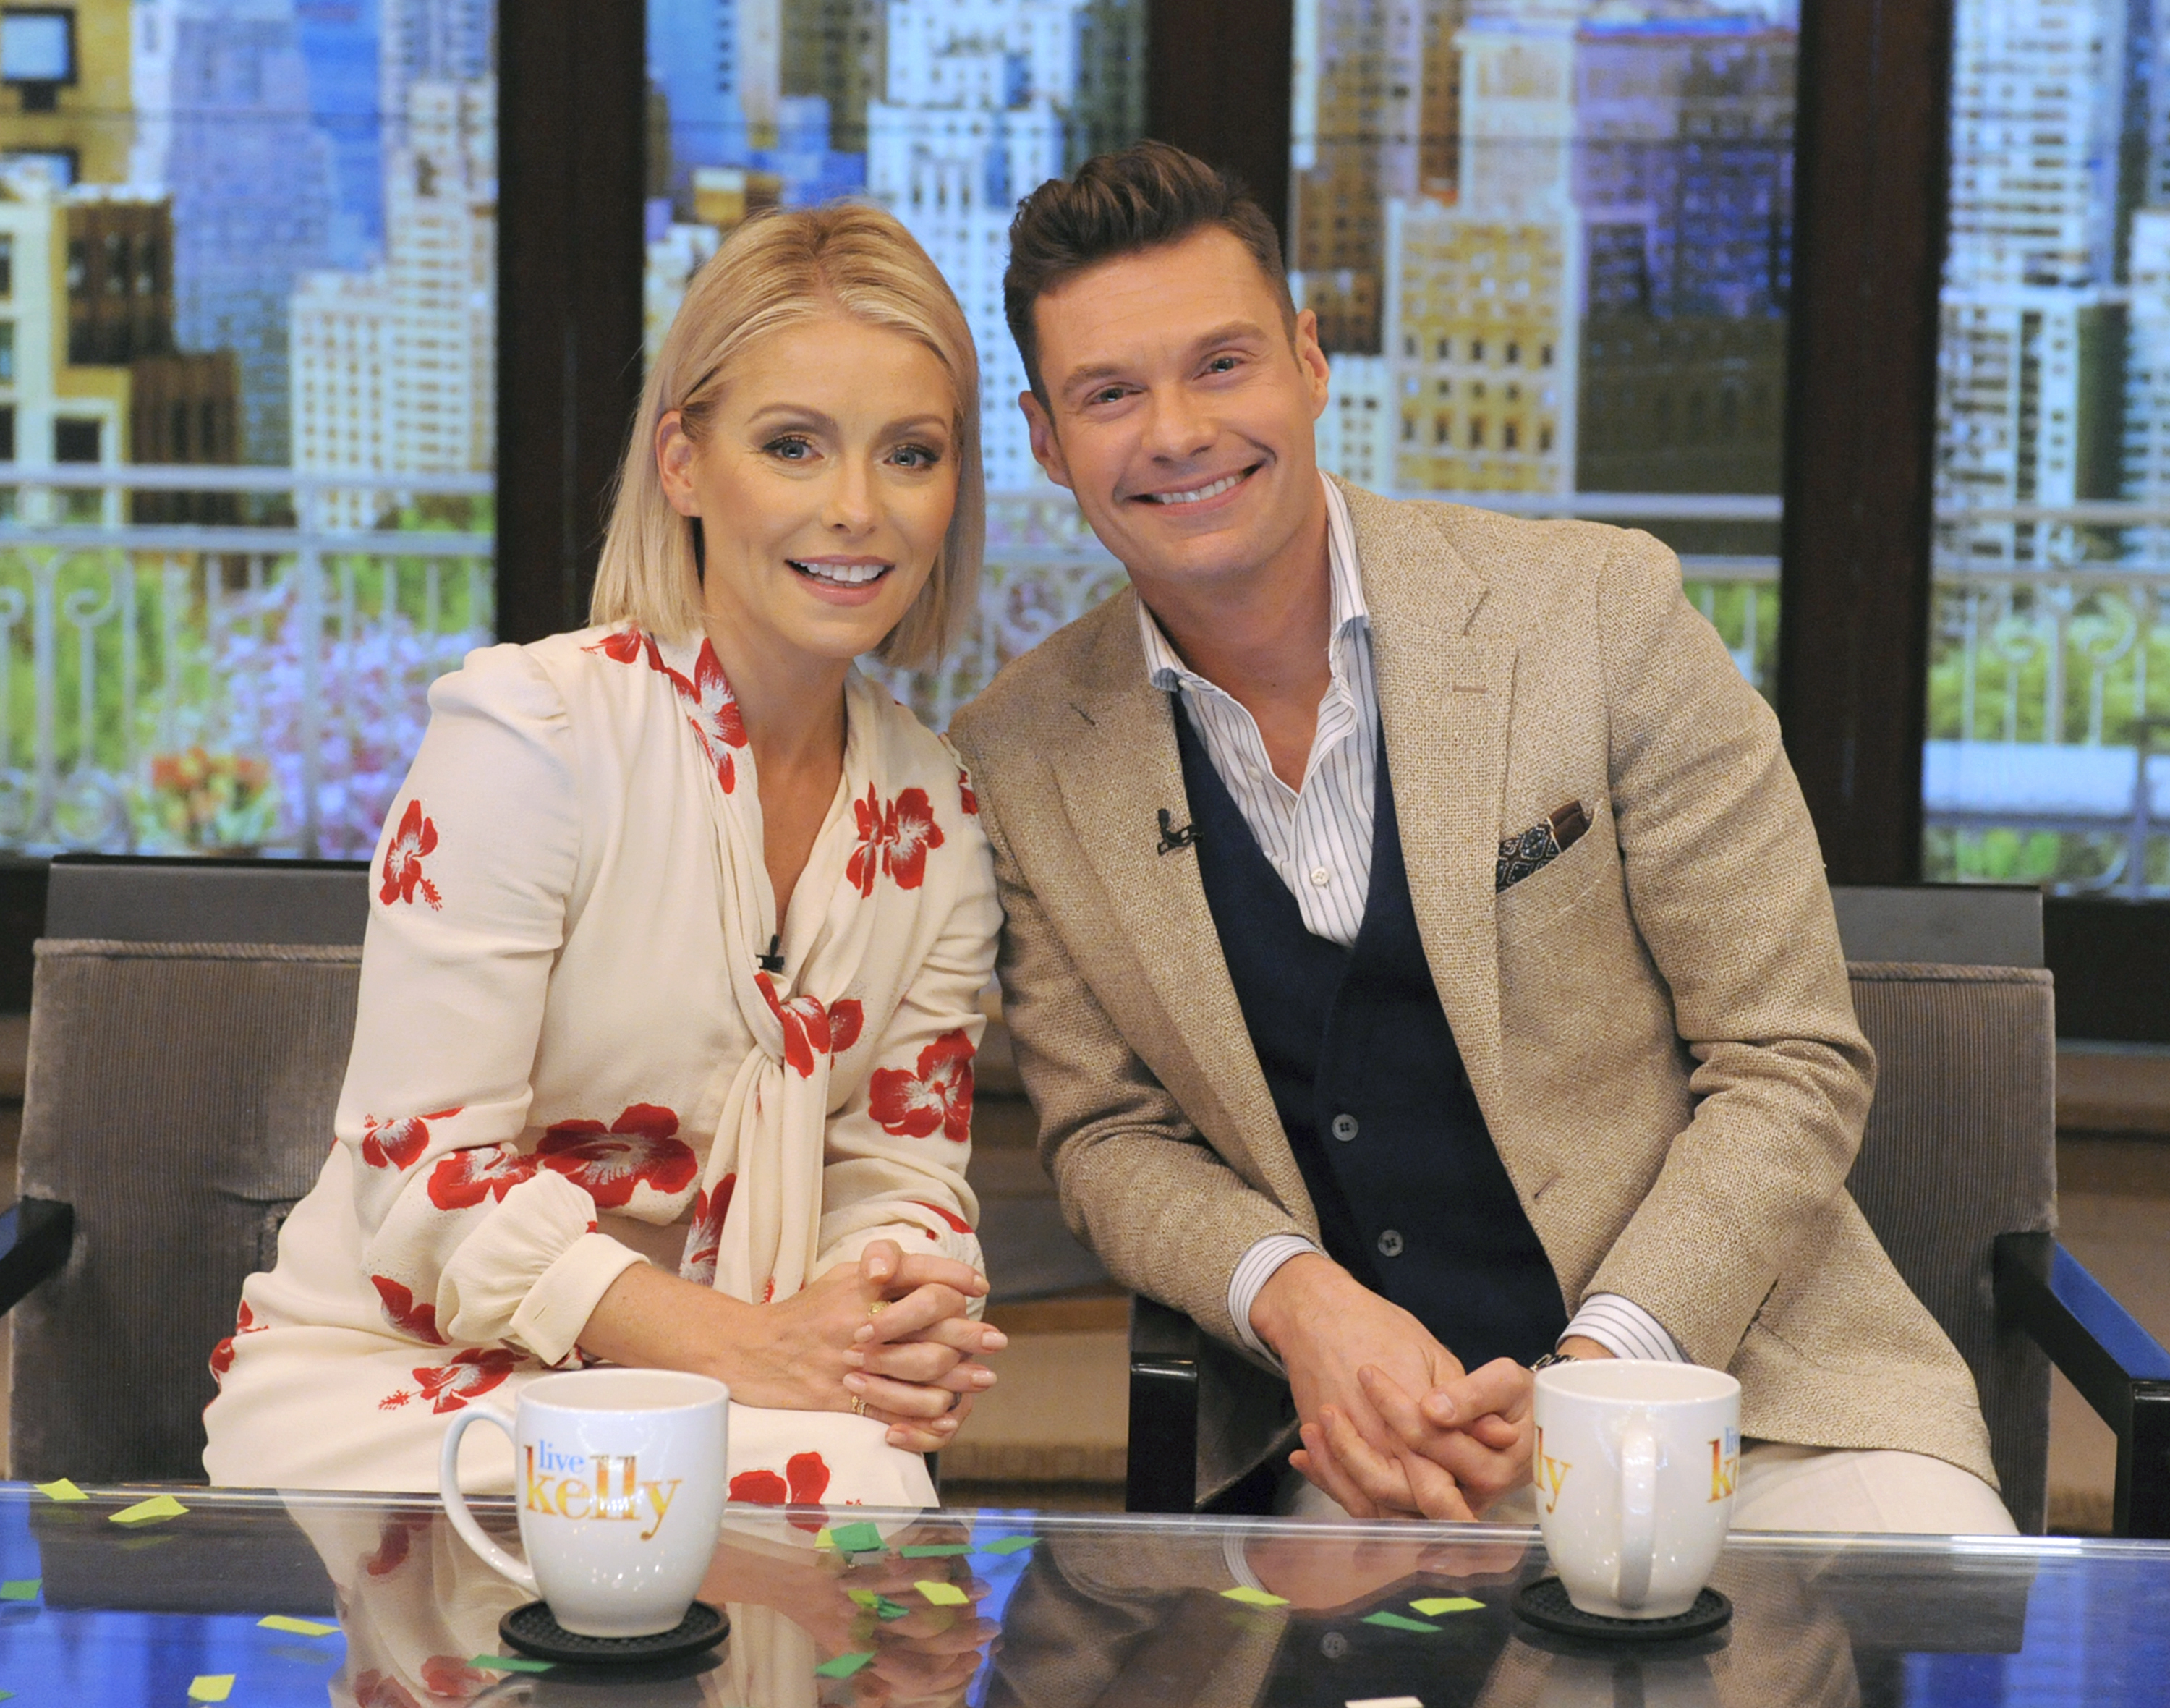 How does Kelly Ripa really feel about the sexual misconduct allegations Ryan Seacrest is facing?